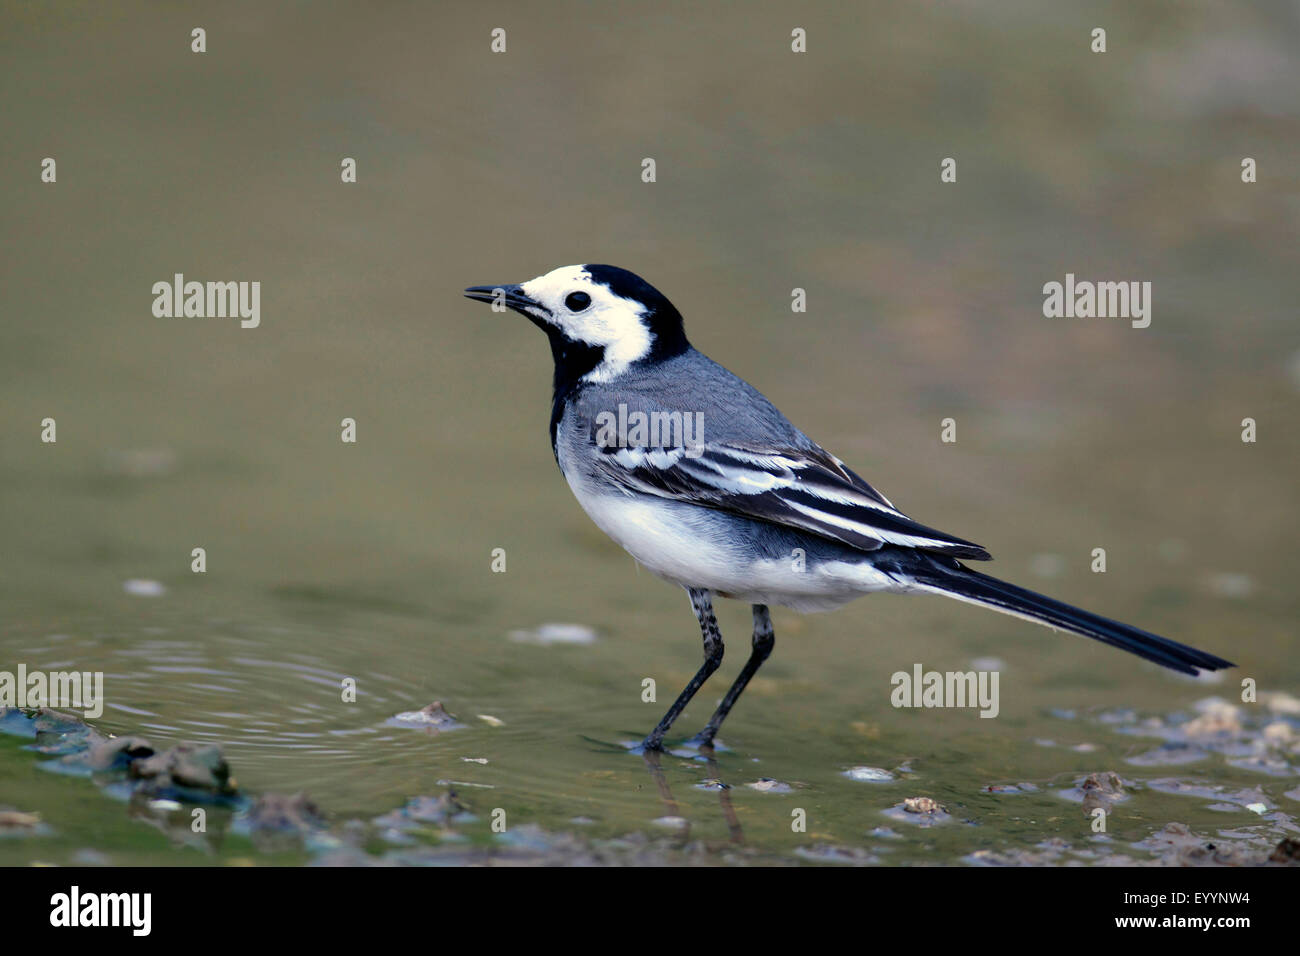 pied wagtail (Motacilla alba), pied wagtail stands in shallow water, Bulgaria, Kaliakra - Stock Image